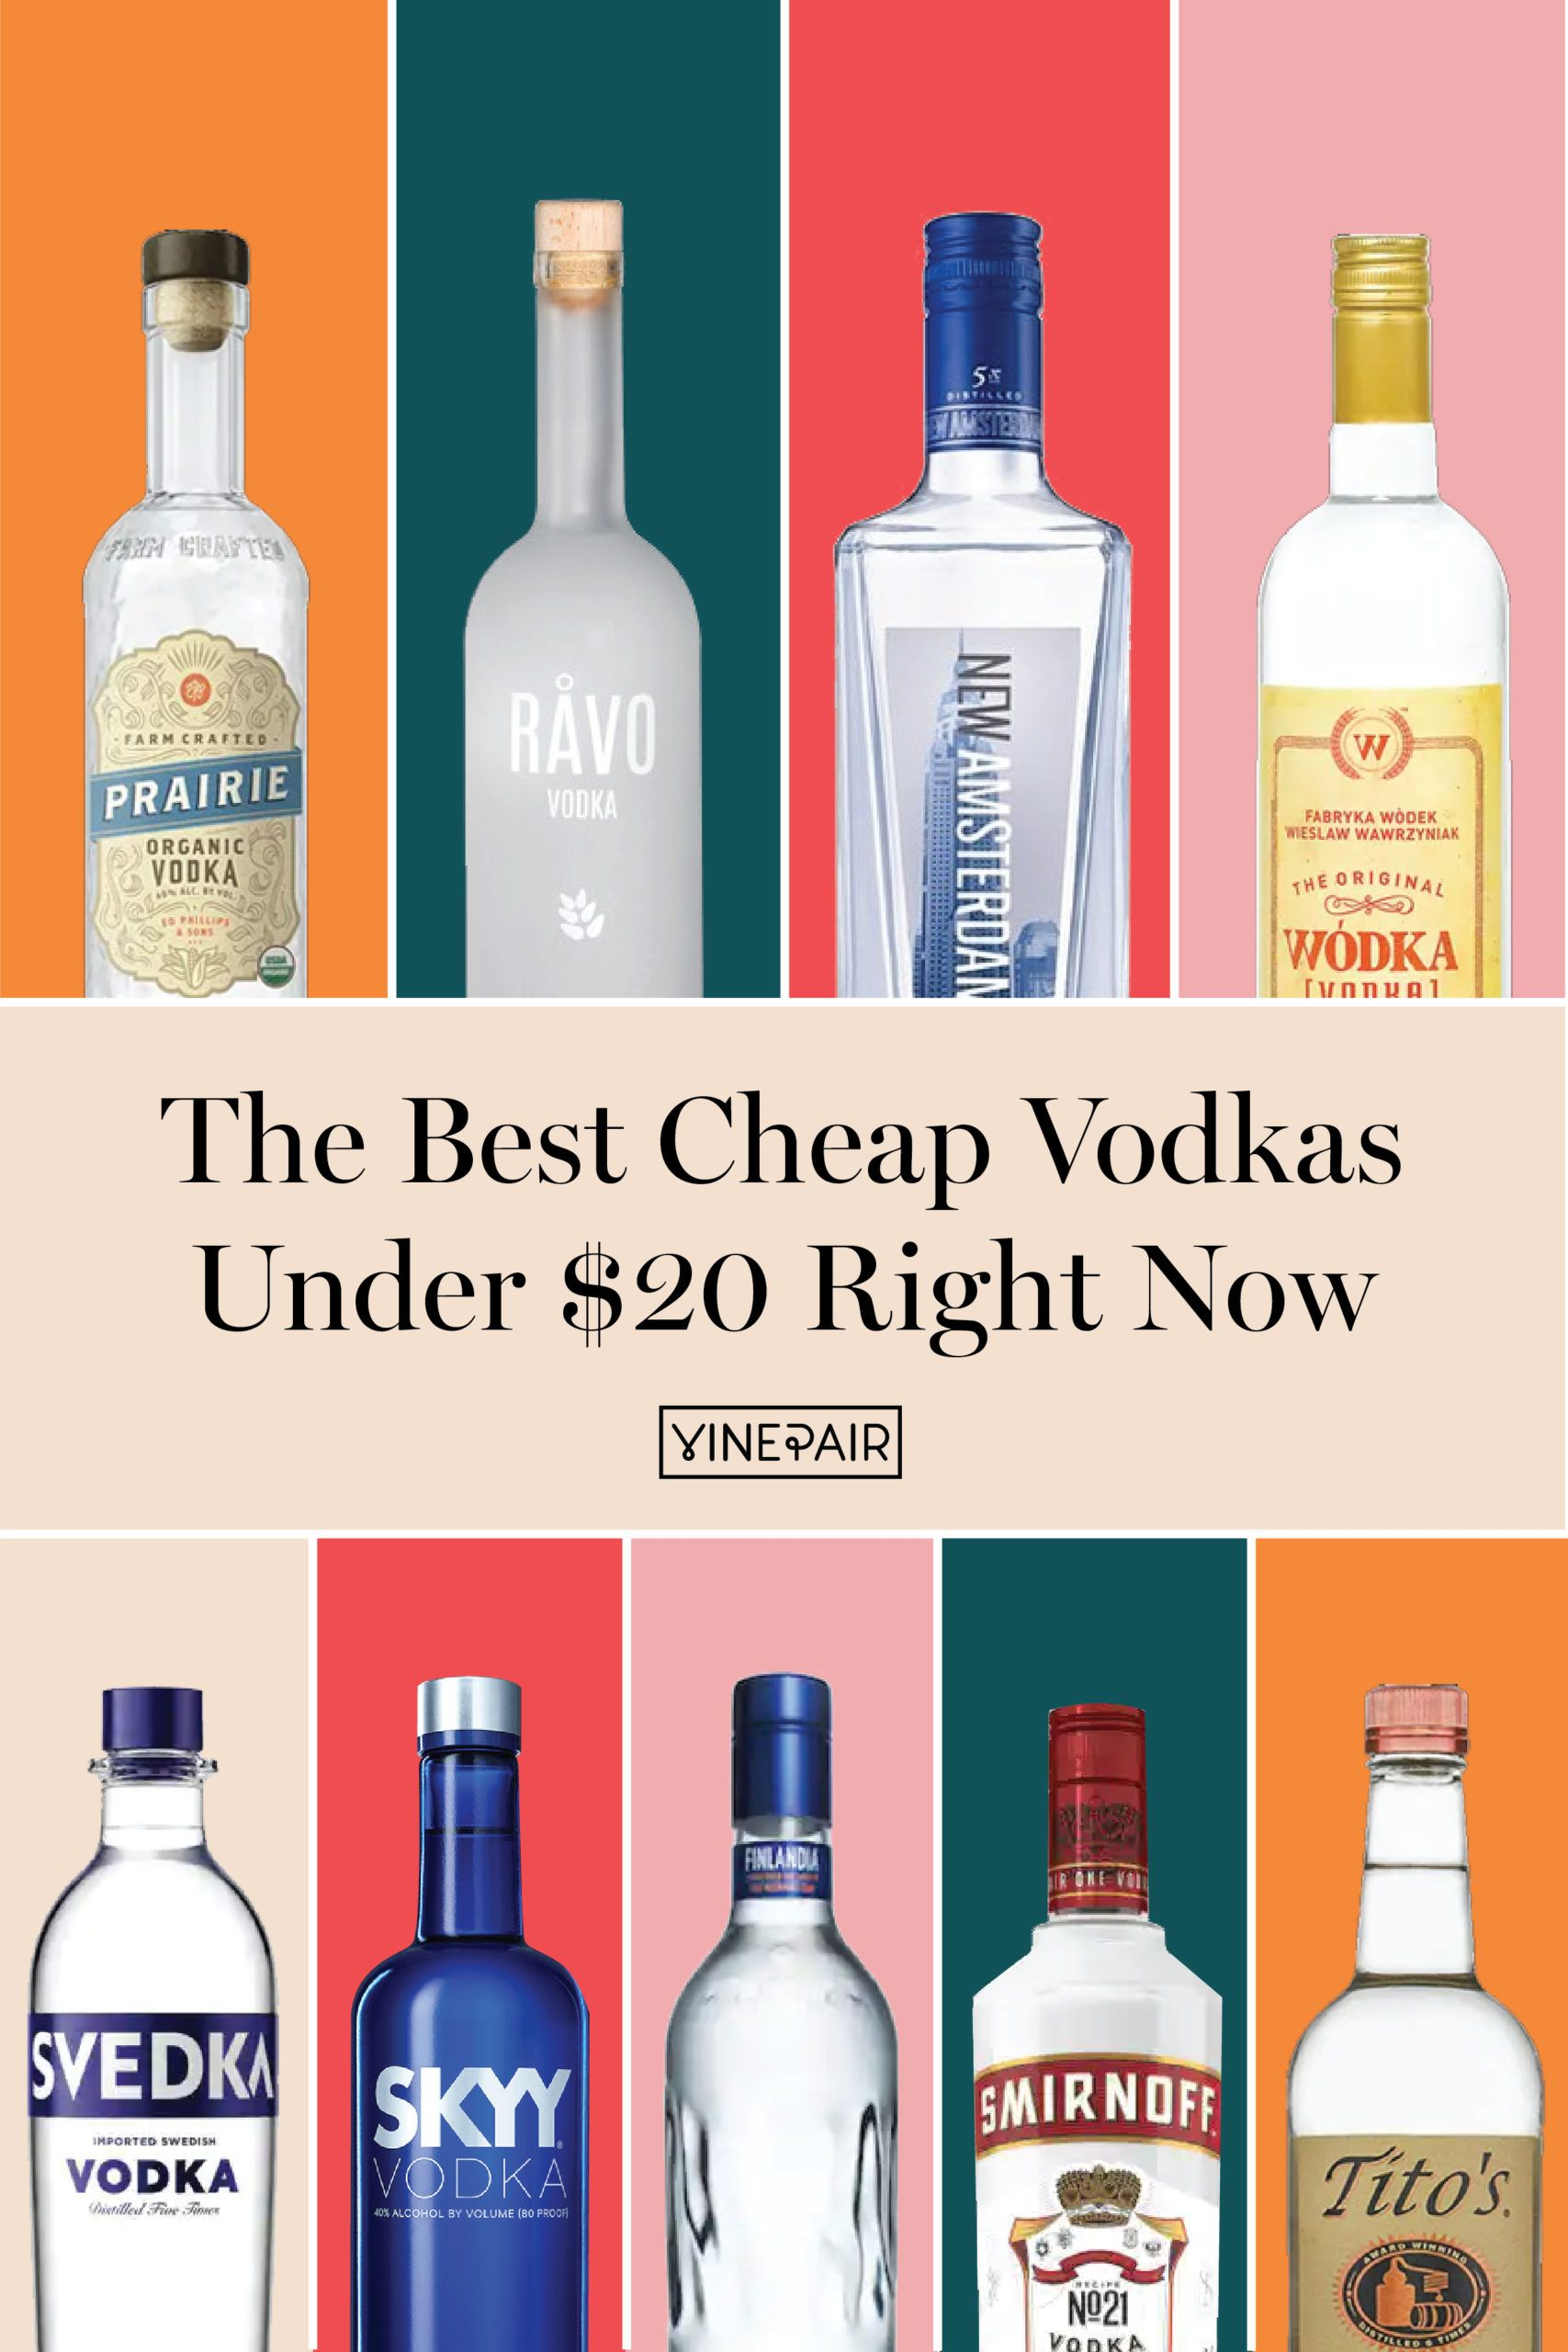 The Best Cheap Vodkas Under 20 Right Now In 2020 Vodka Organic